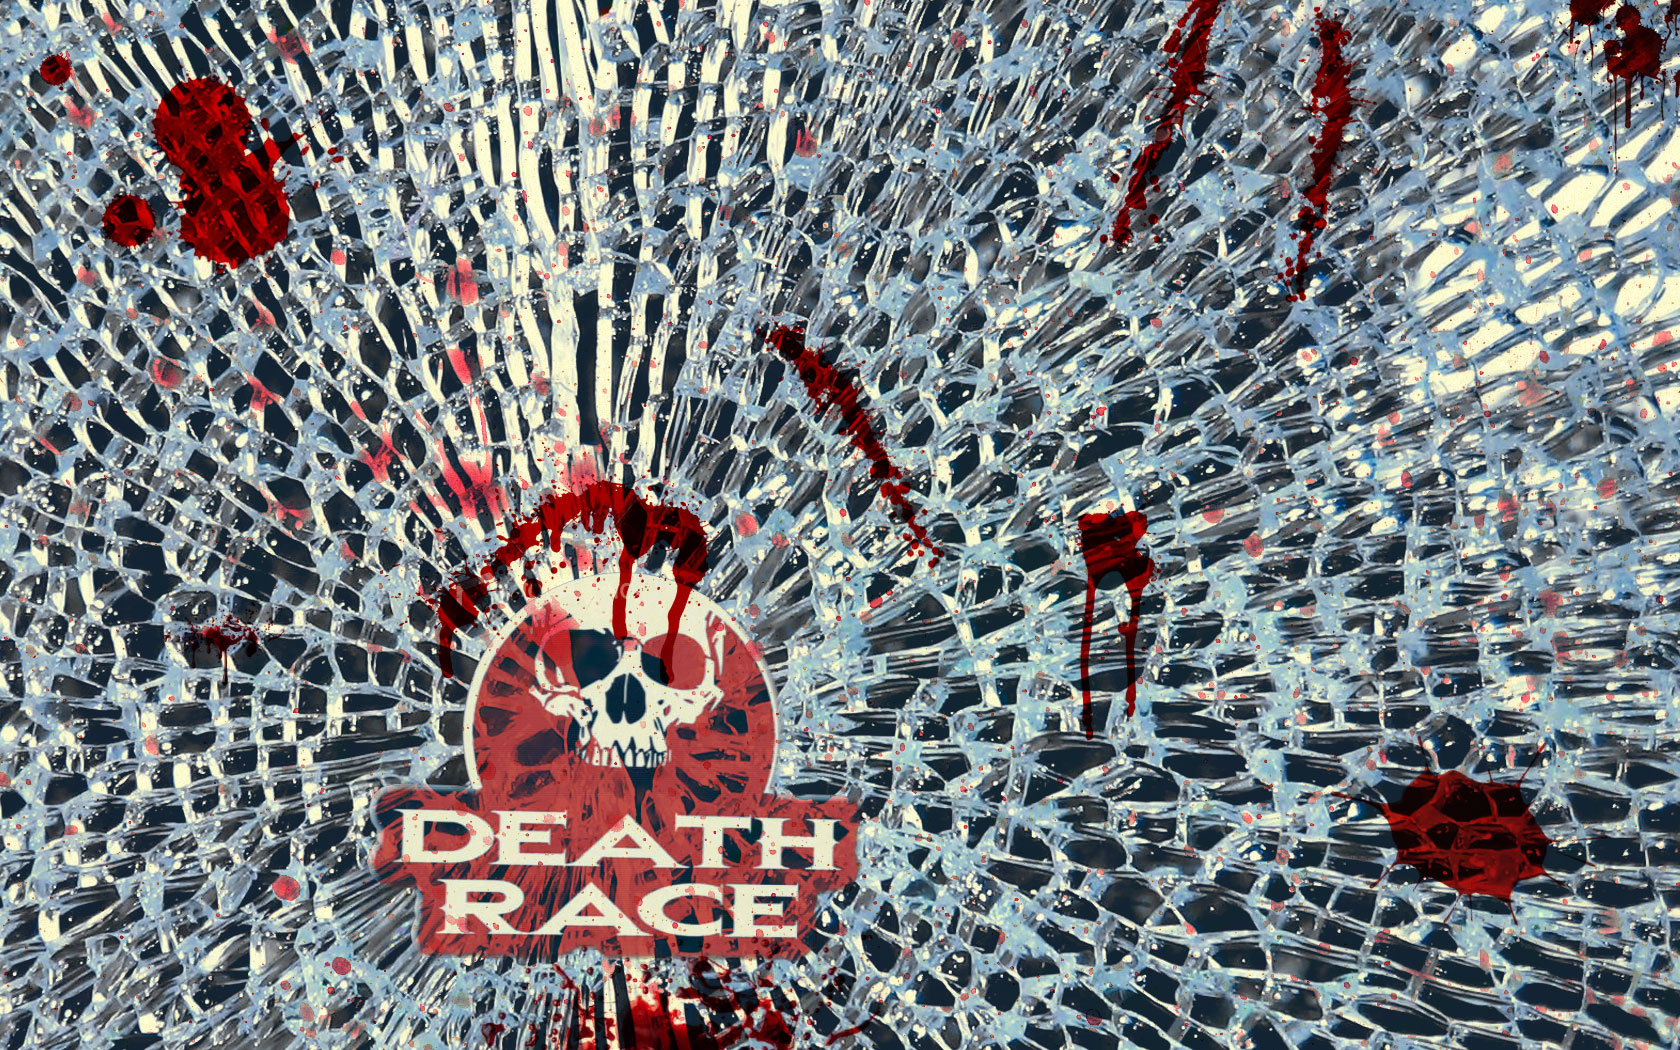 30 Wallpapers Of Death Race In High Quality